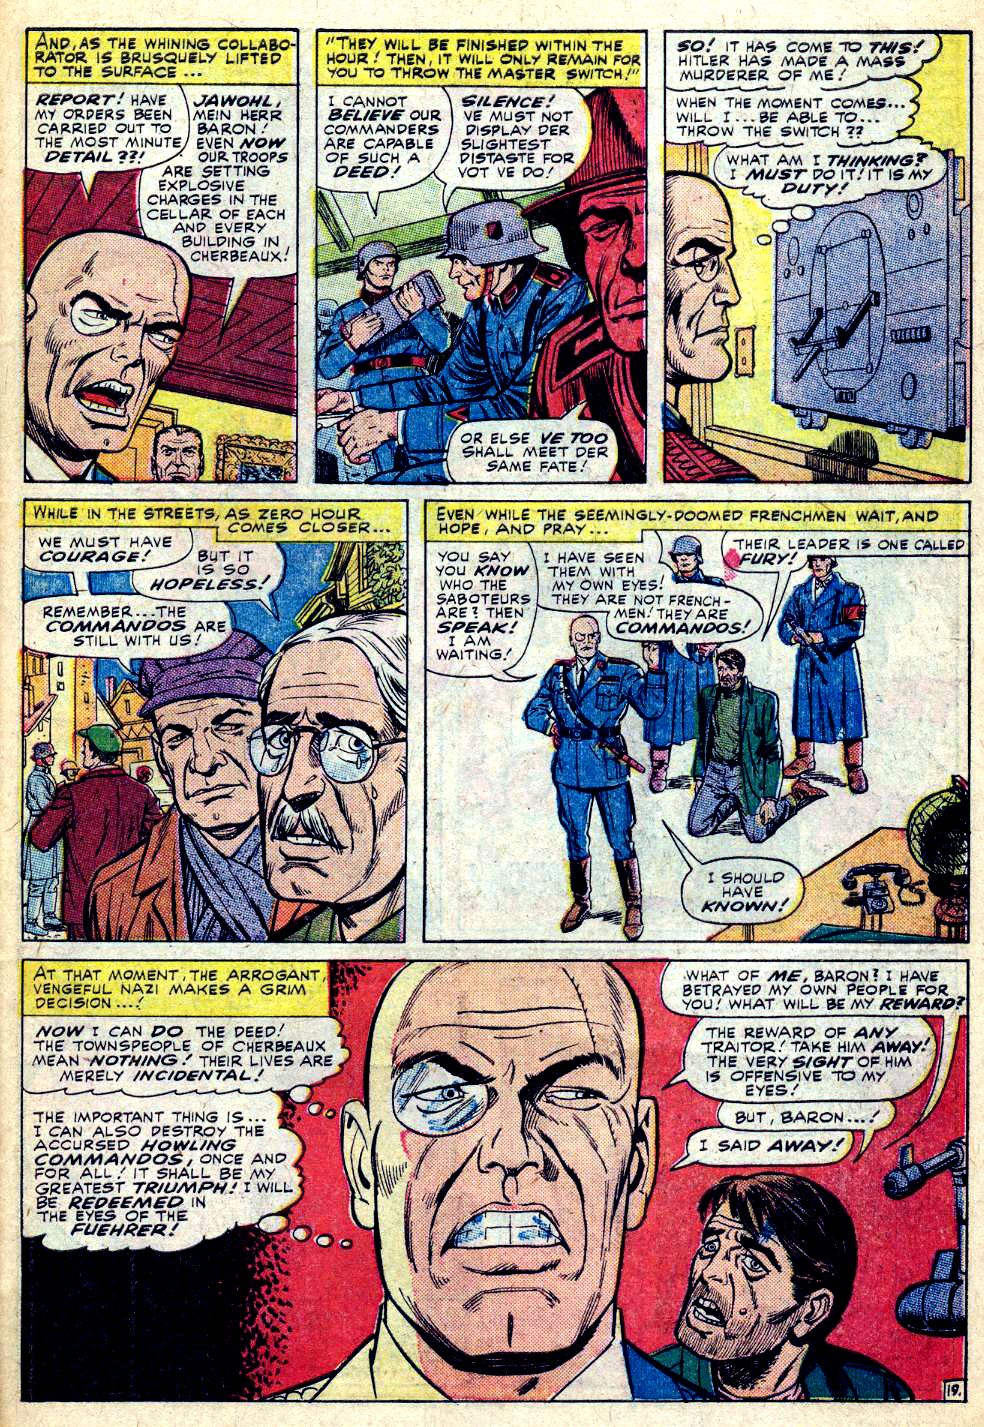 Read online Sgt. Fury comic -  Issue #28 - 27